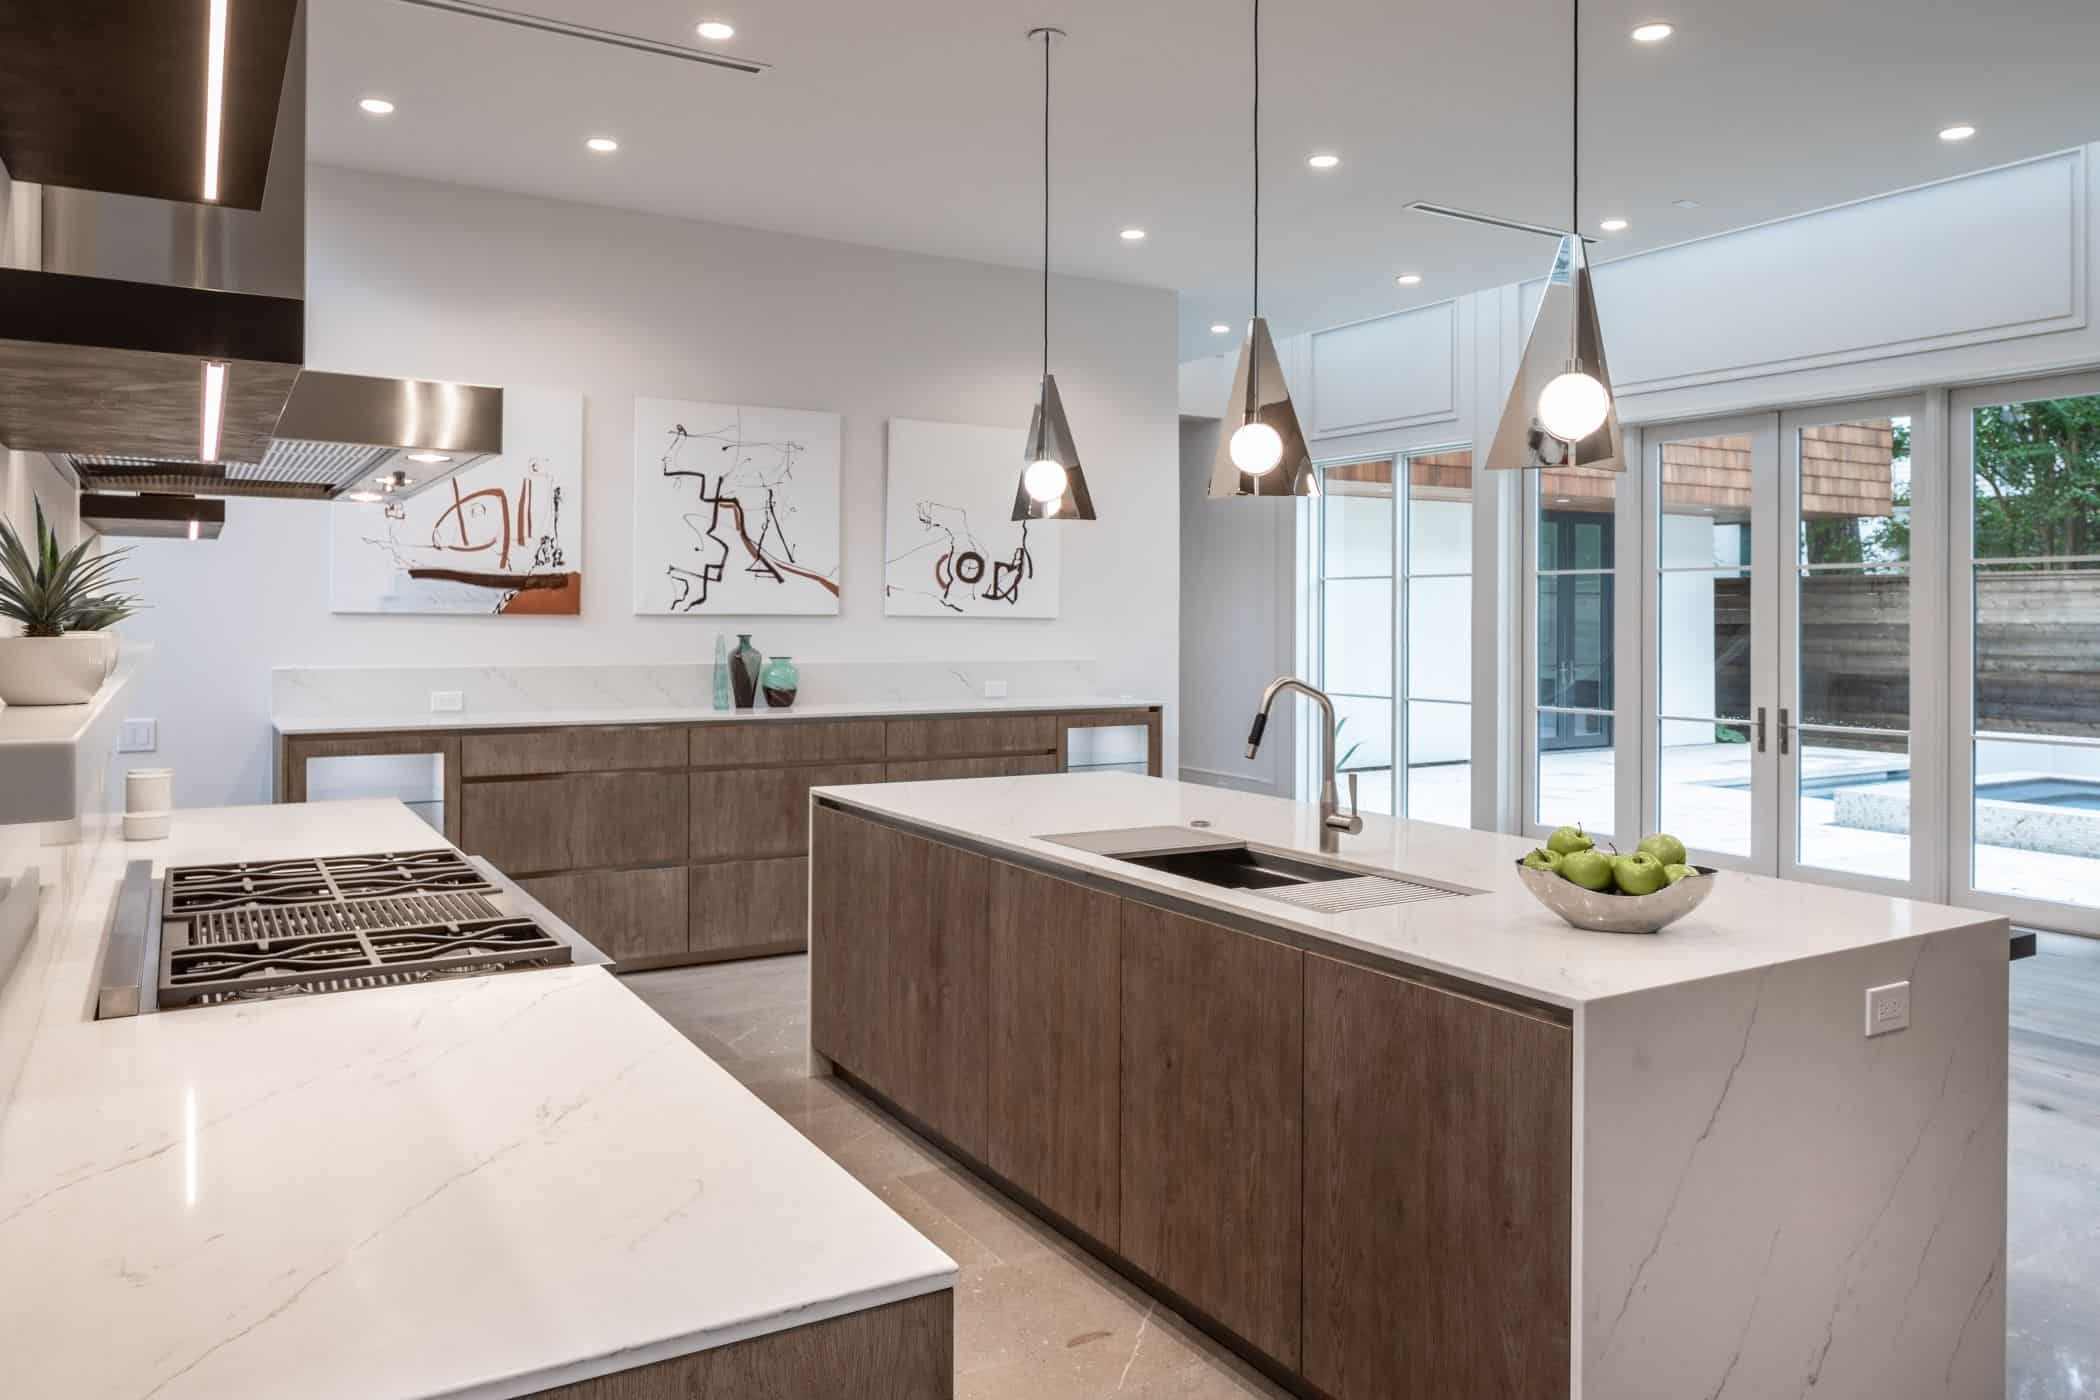 exceptional design of a german kitchen in a washington coalition memorial park area home in houston